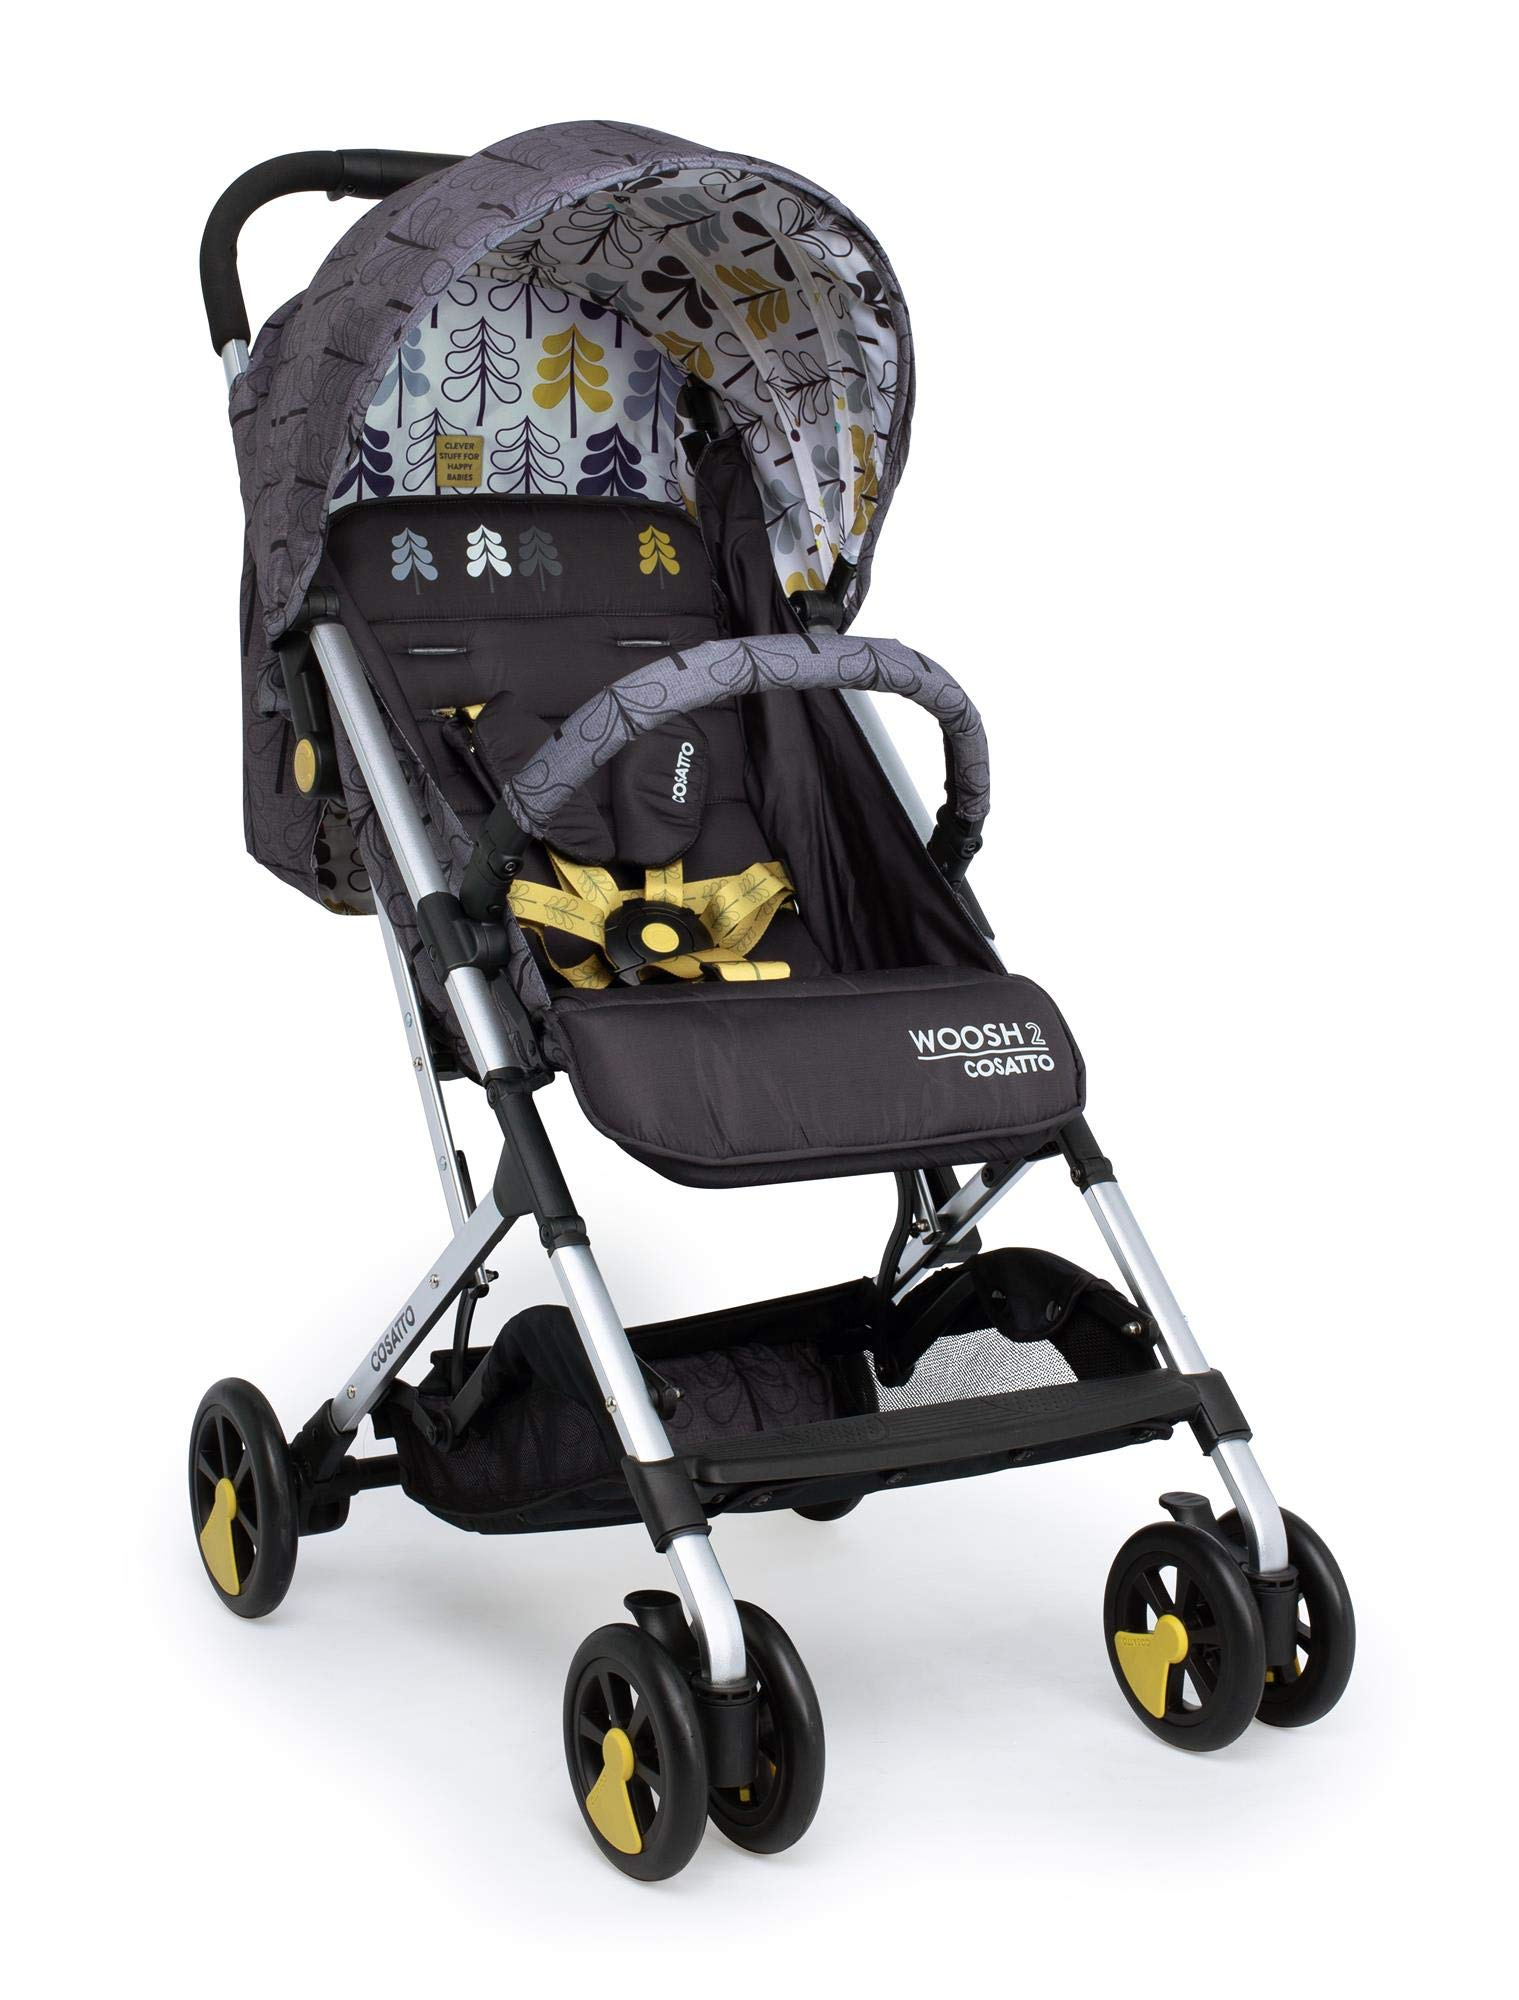 Cosatto Woosh 2 Stroller Fika Forest with raincover and Bumper bar Birth to 25kg Cosatto INCLUDES: The pushchair itself, Raincover, Bumper bar,4 year guarantee(UK and Ireland only) Suitable from birth to max weight of 25kg. Lets your toddler use it for even longer. Lightweight, sturdy aluminium frame. Newborn recline. Lightweight waterproof Ripstop fabric on seat. Lockable swivel front wheels for quick manoeuvres Roomy seat for extra comfort. Removable bumper bar for extra support. Magic bell. Front & rear suspension for a smooth ride. 3